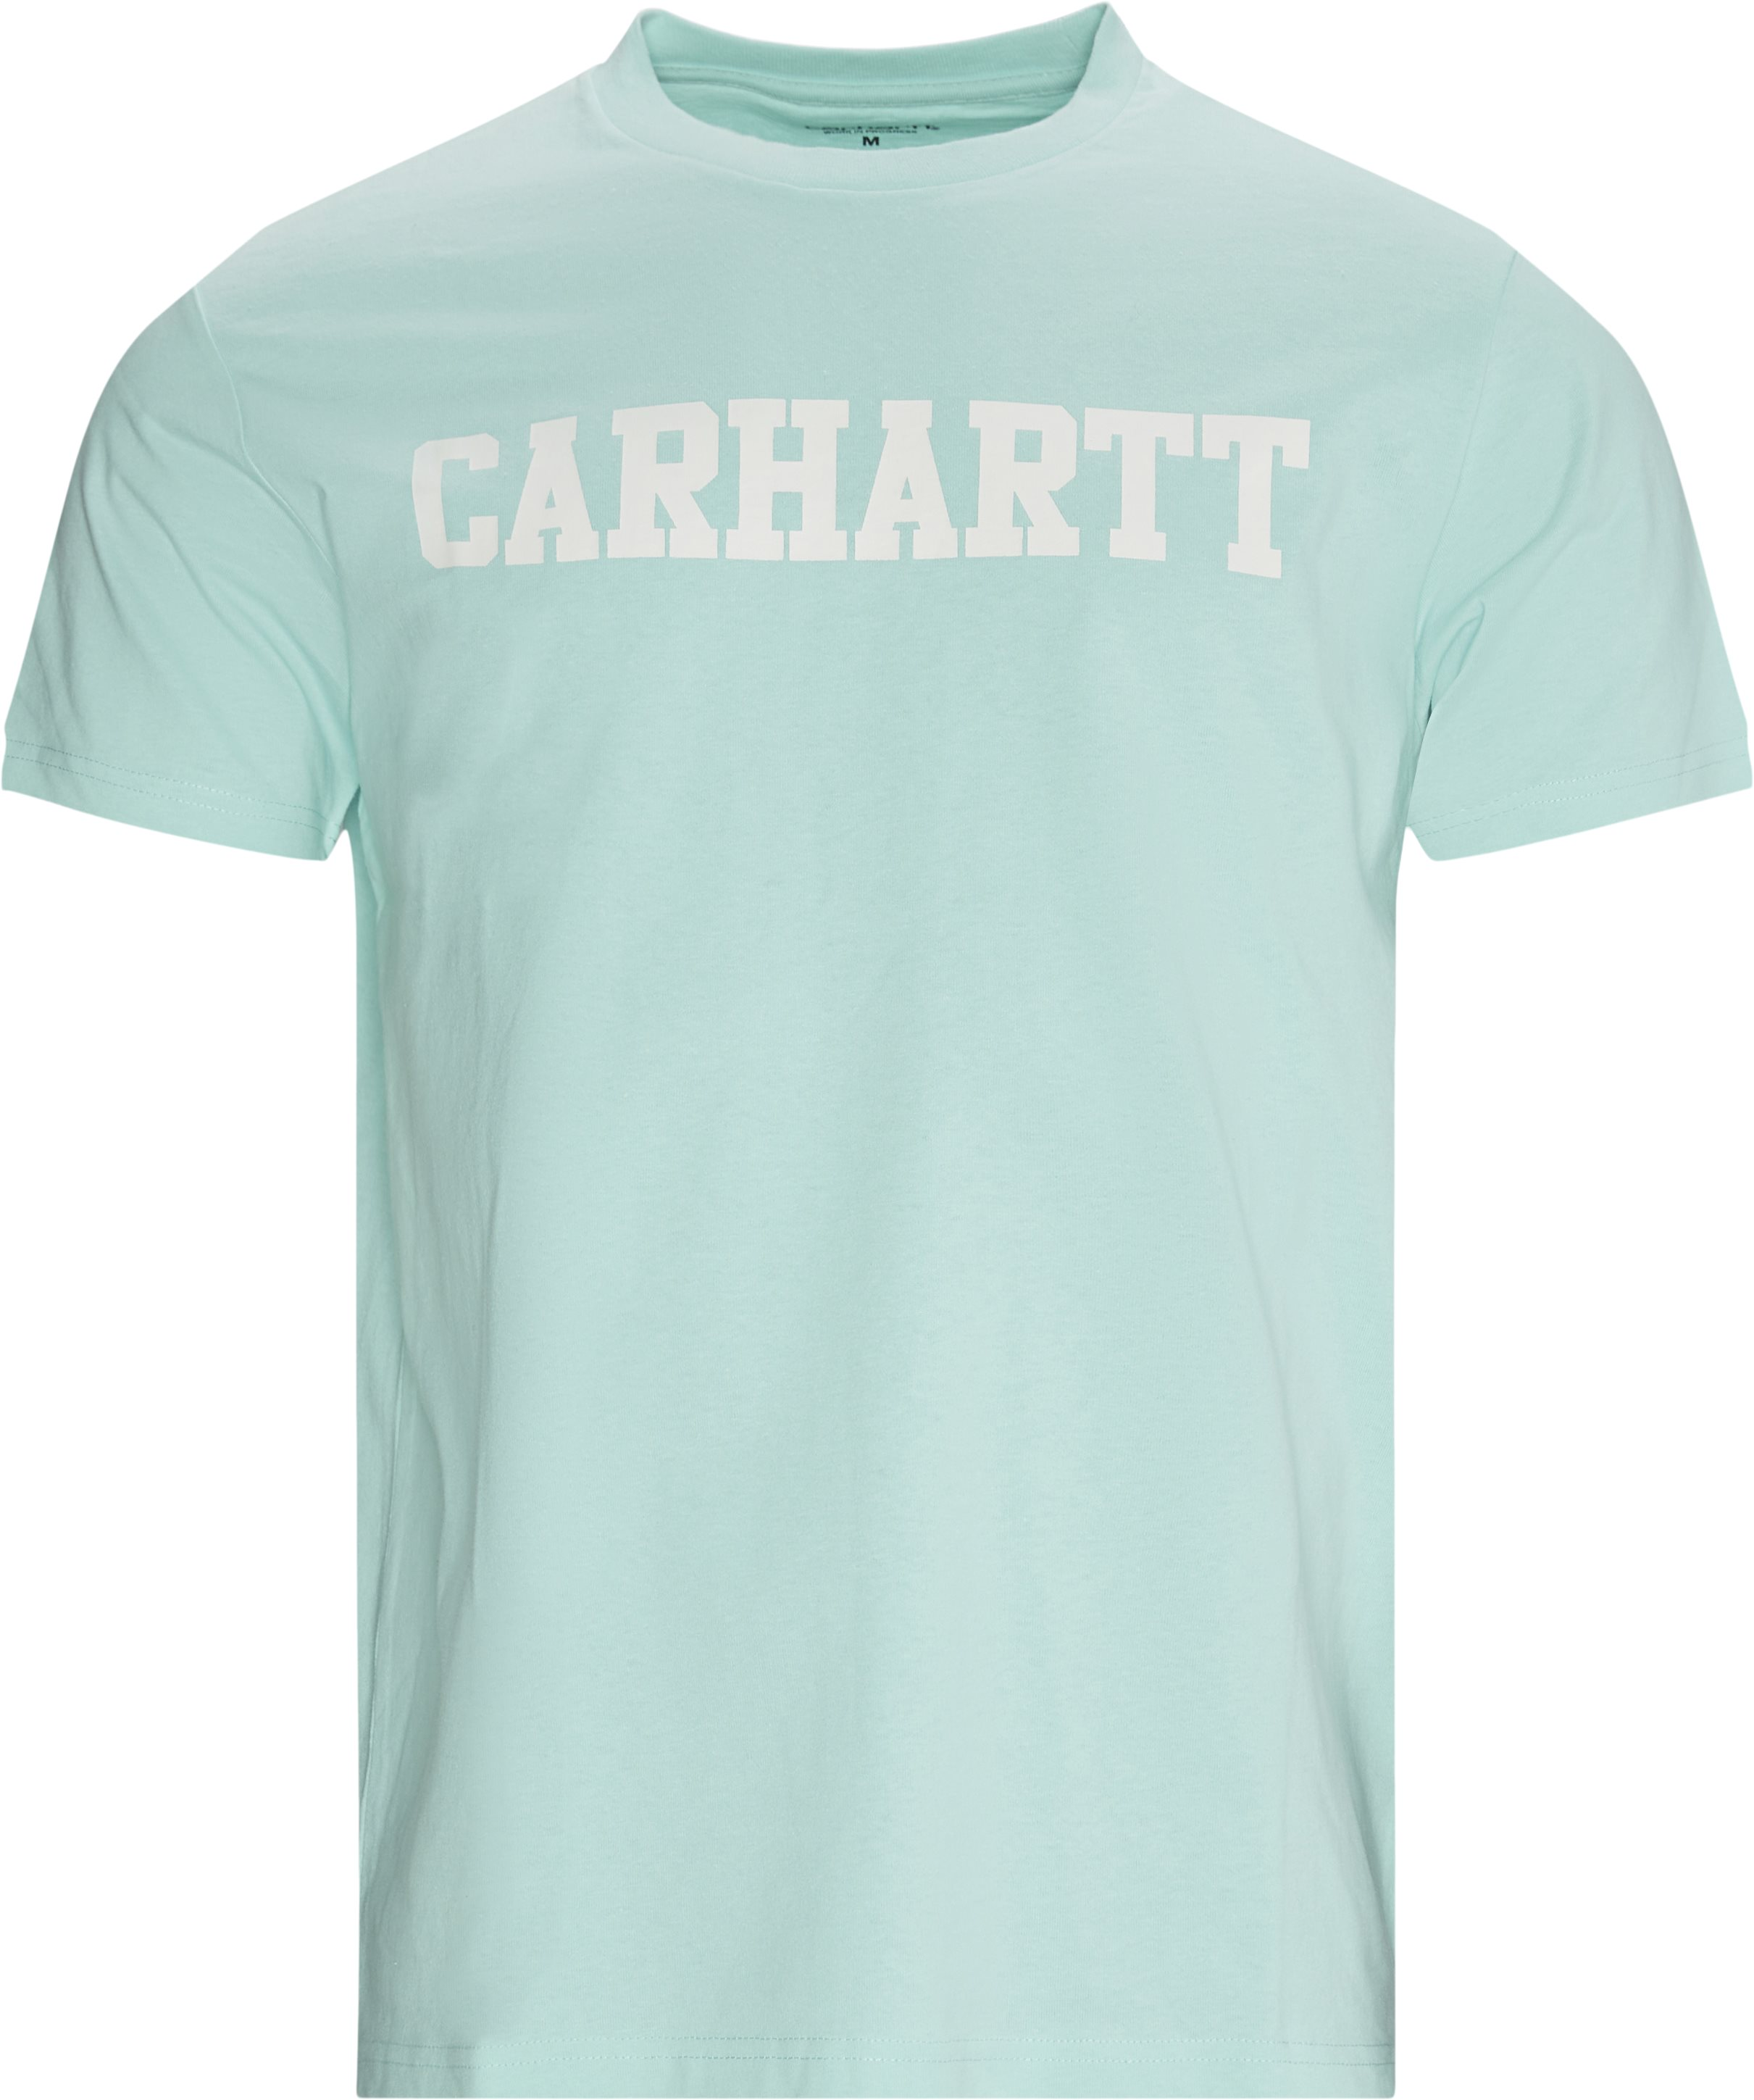 College Tee - T-shirts - Regular fit - Blue